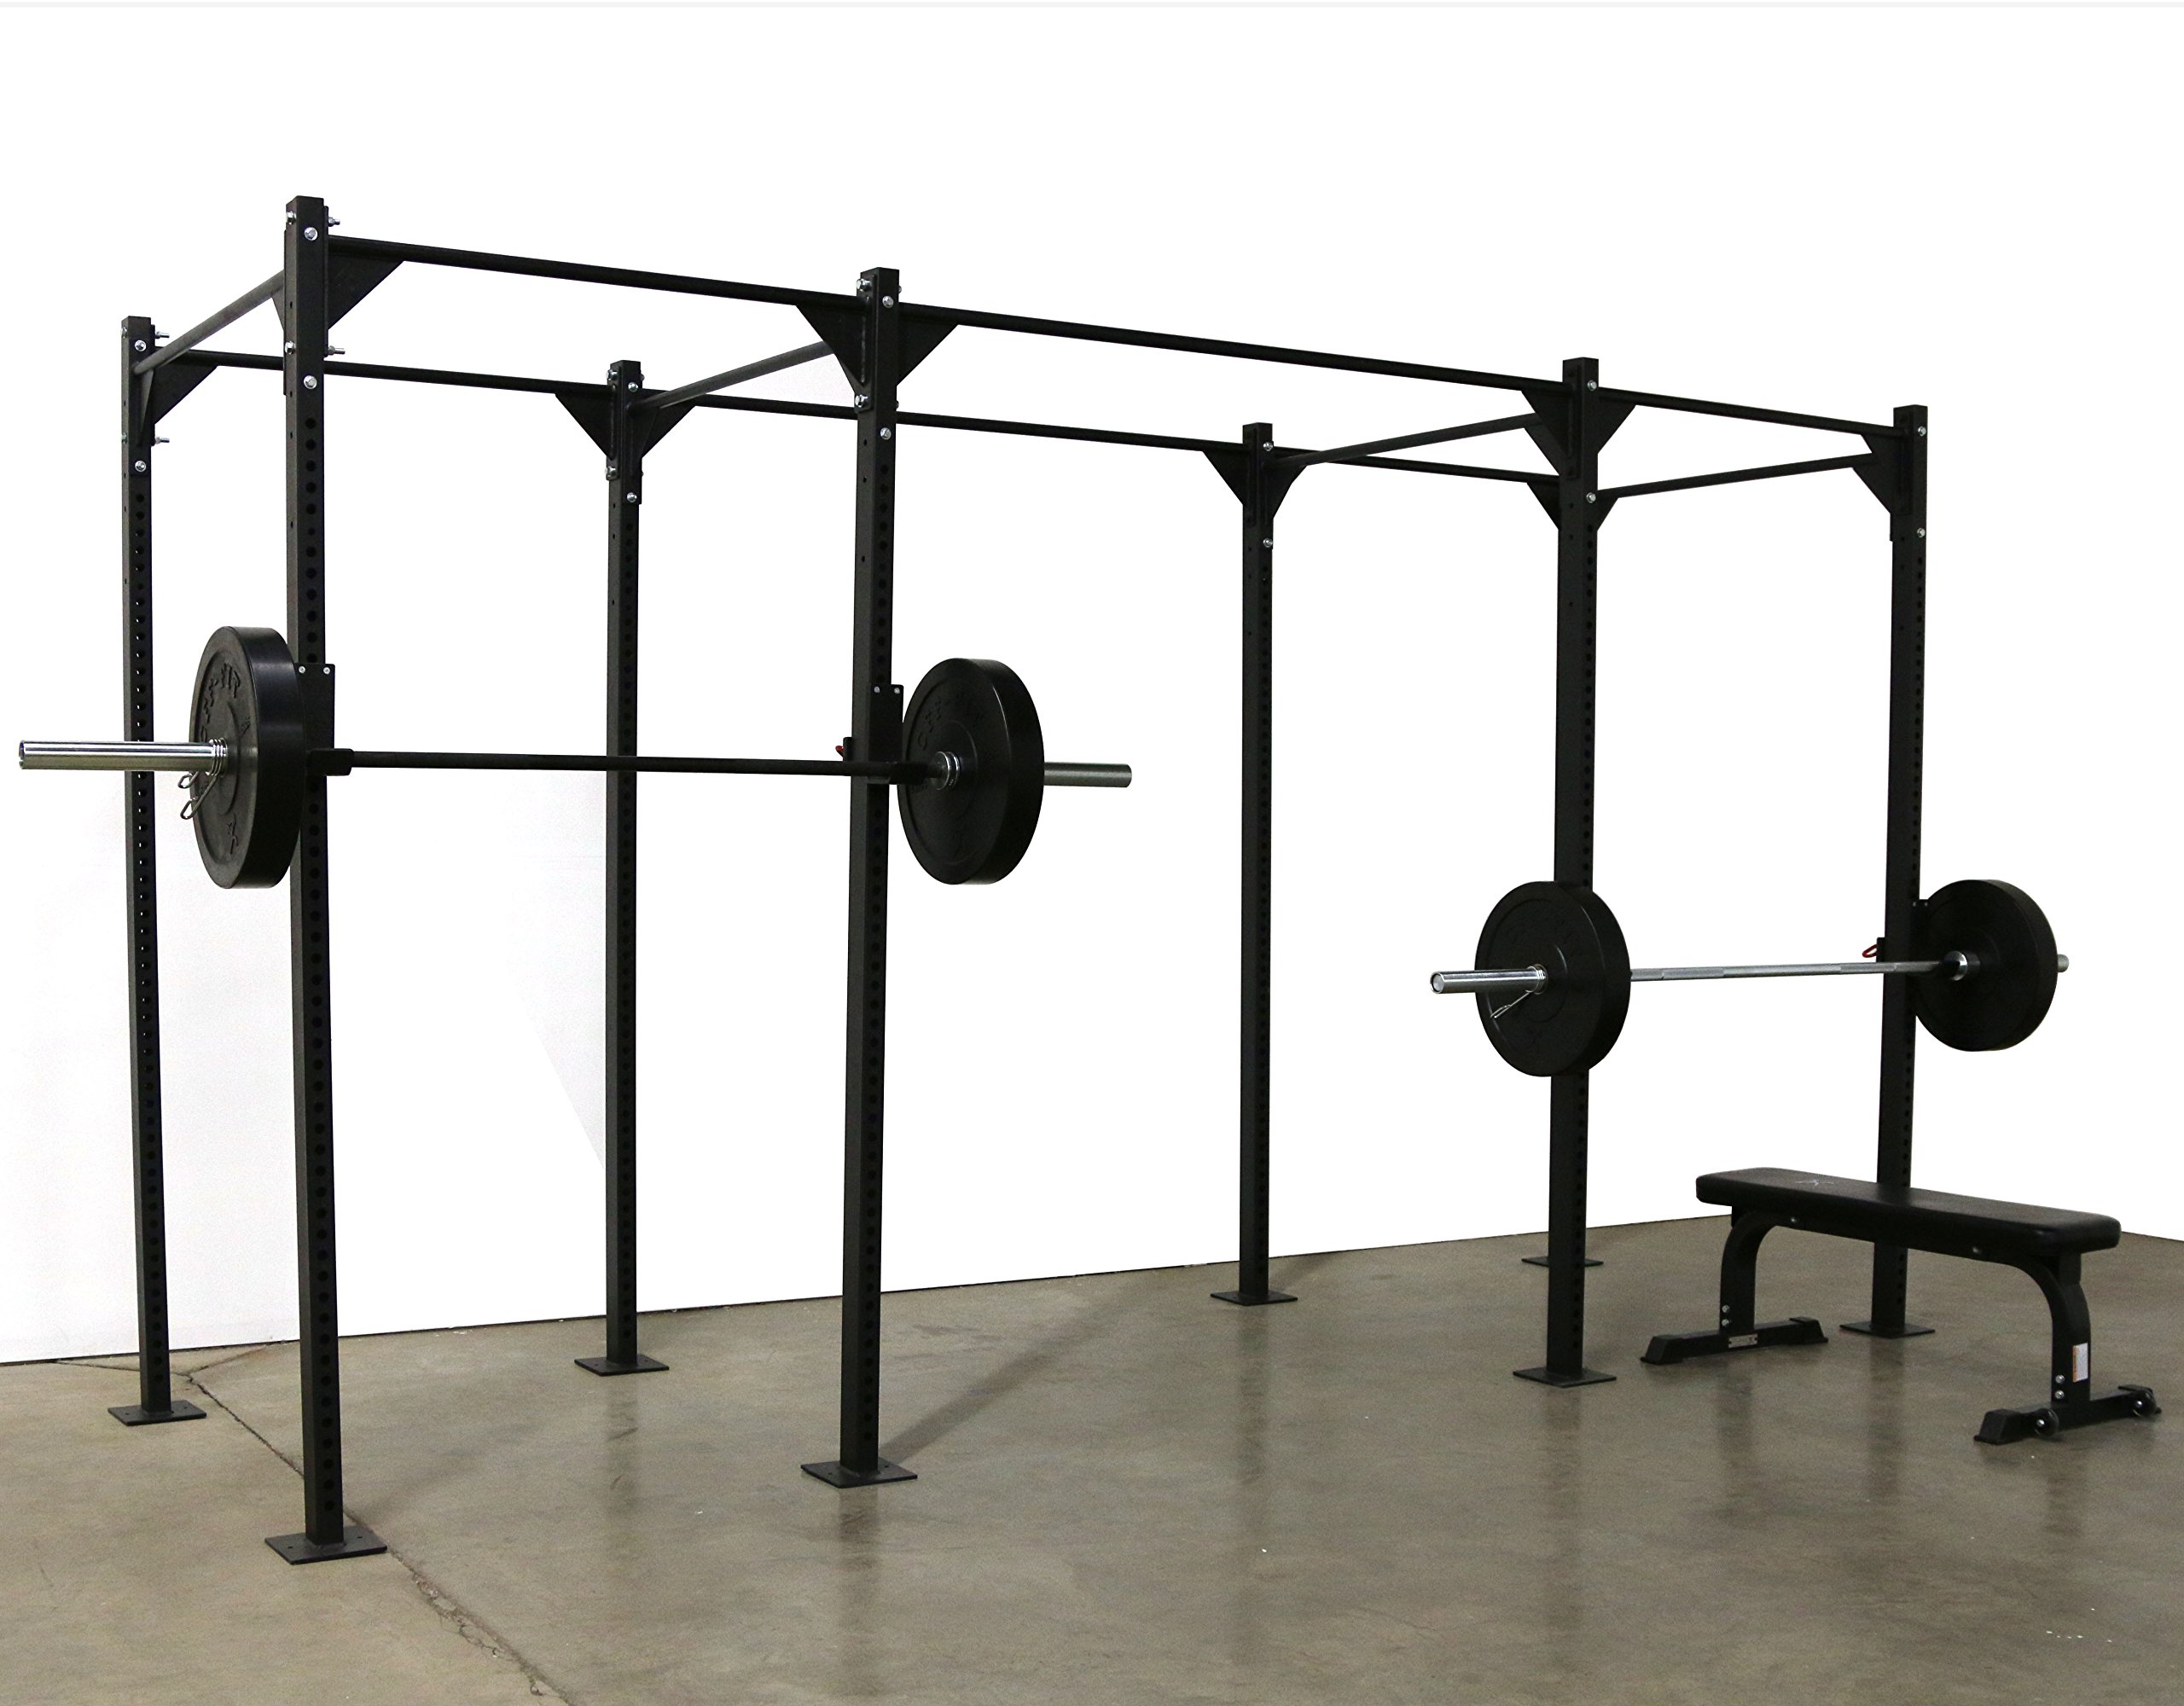 CFF 14' Rig Pull up Rig and Rack System by CFF-FIT (Image #2)